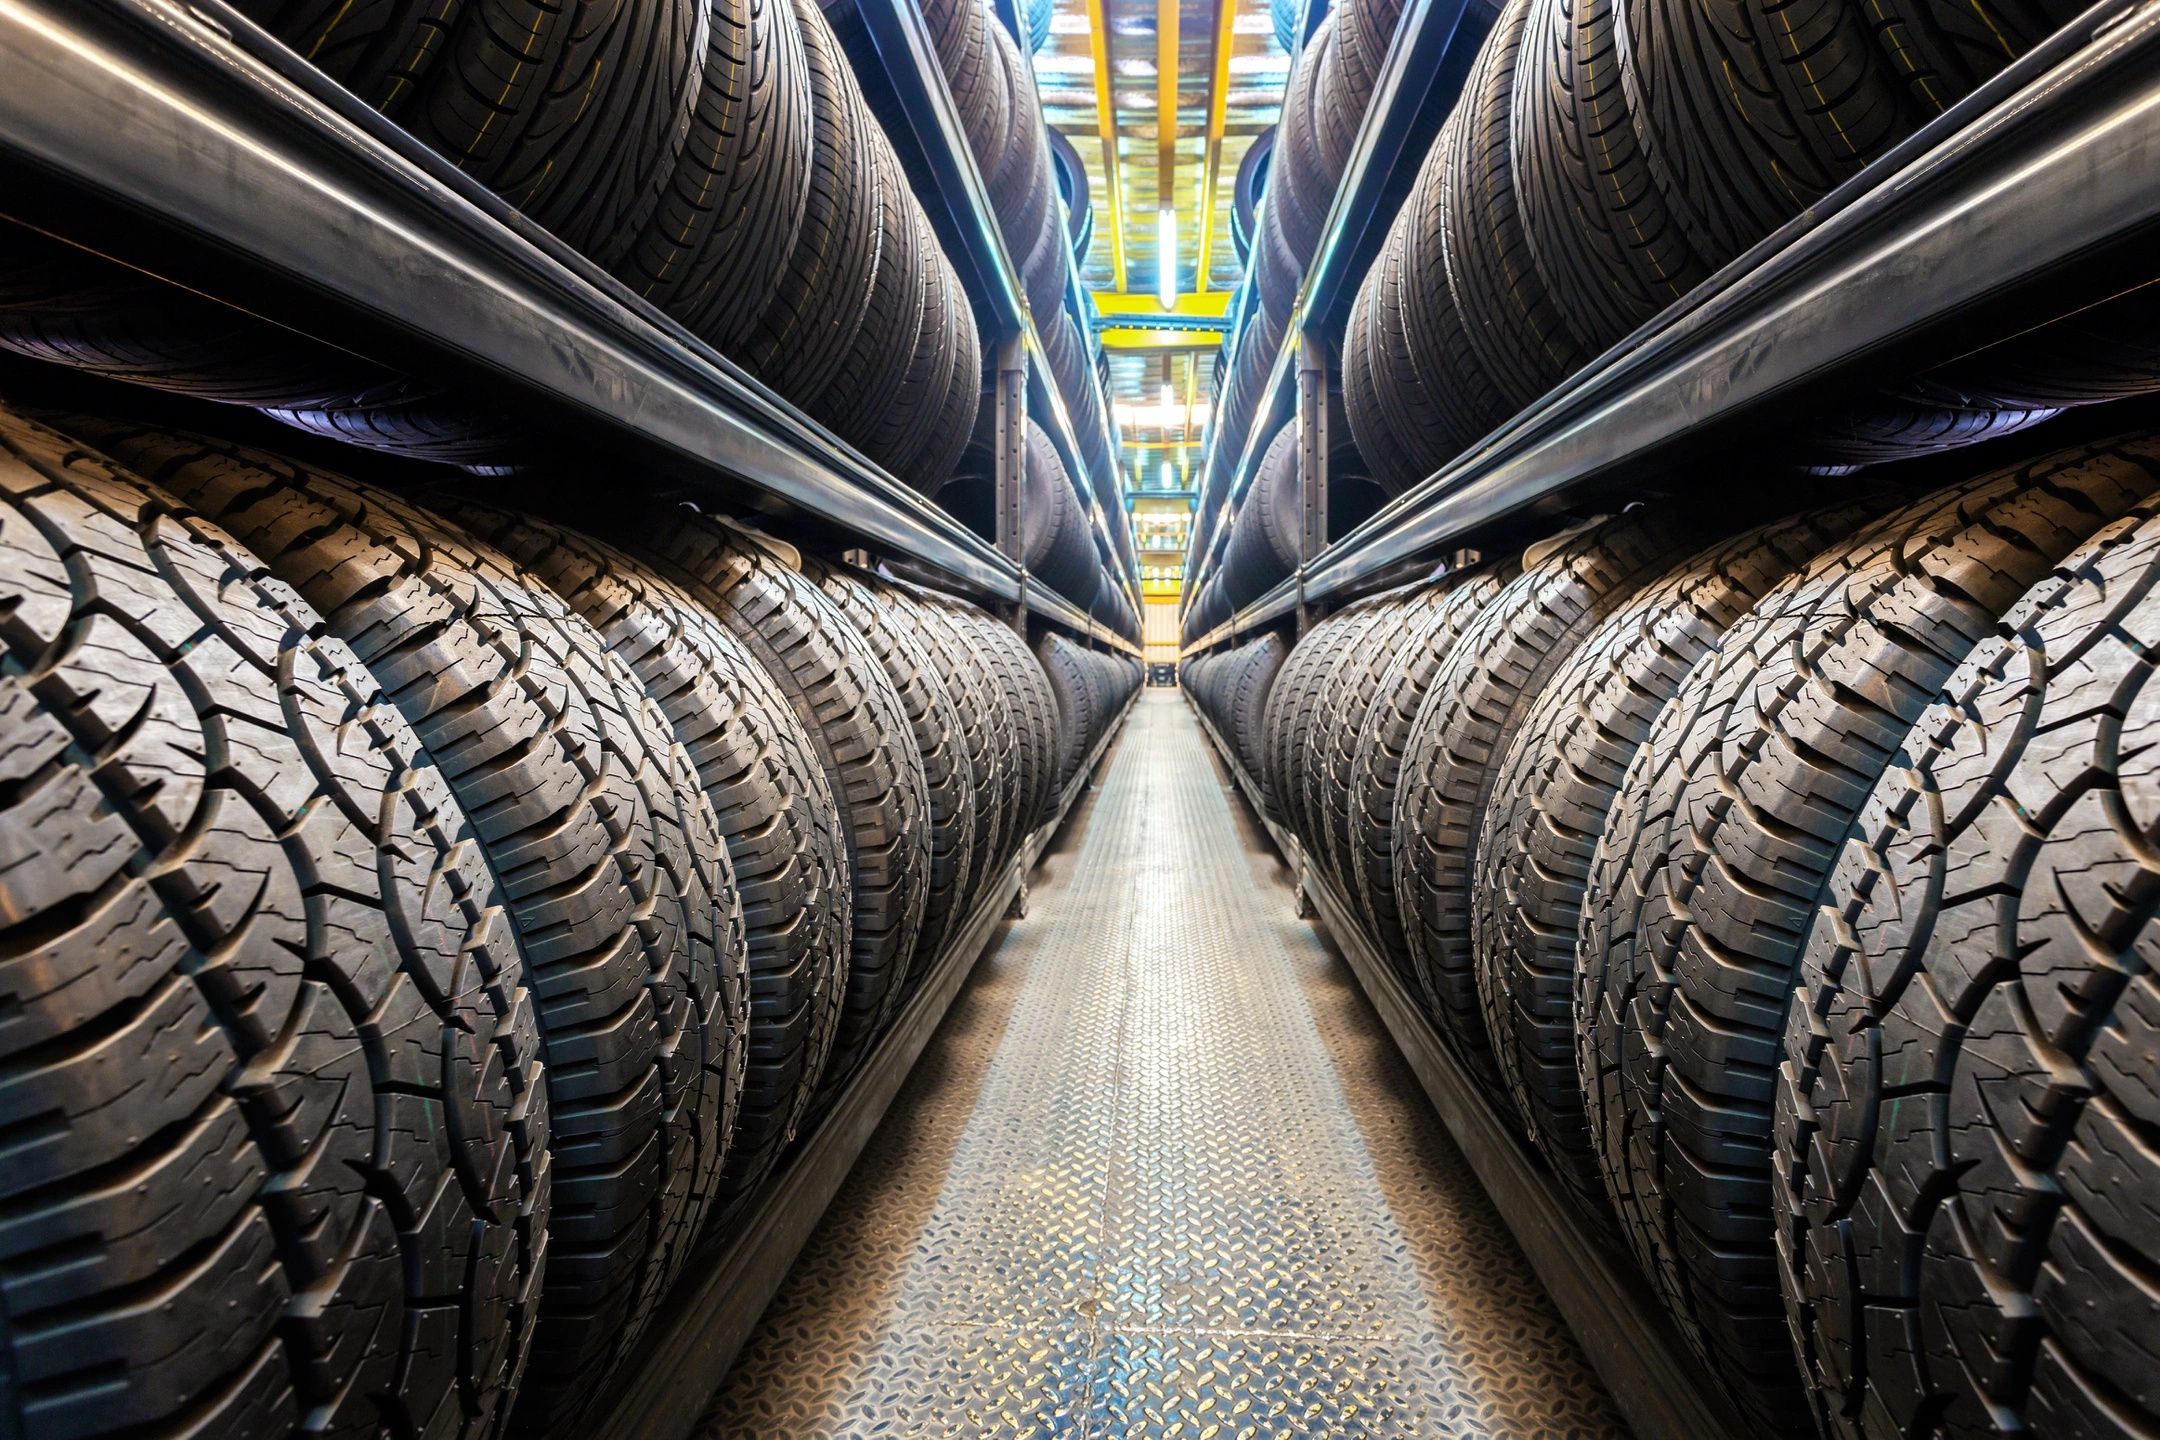 Image of car tires to represent the flat time of DC widow Marjorie Brimley